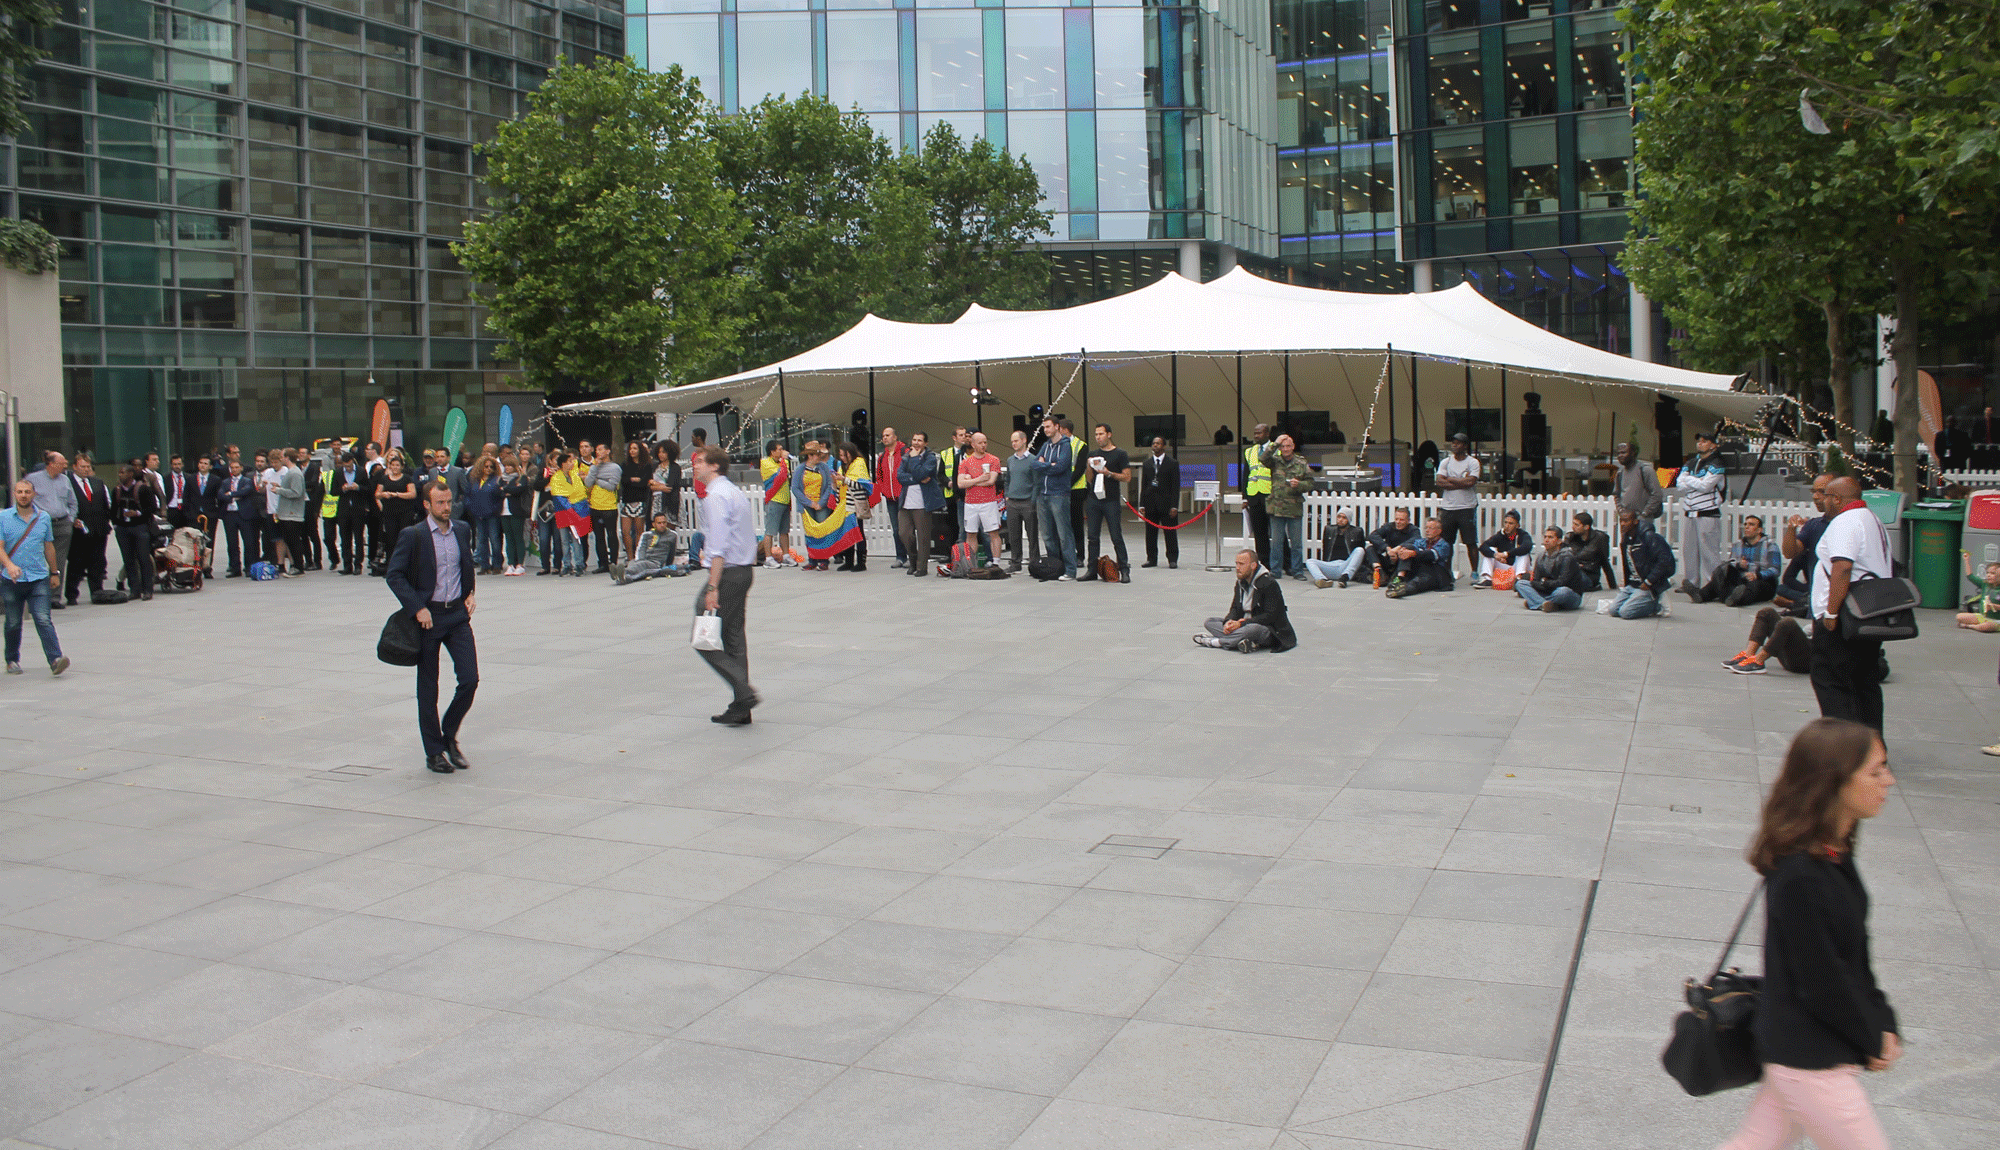 Summer of Sport at Regents Place